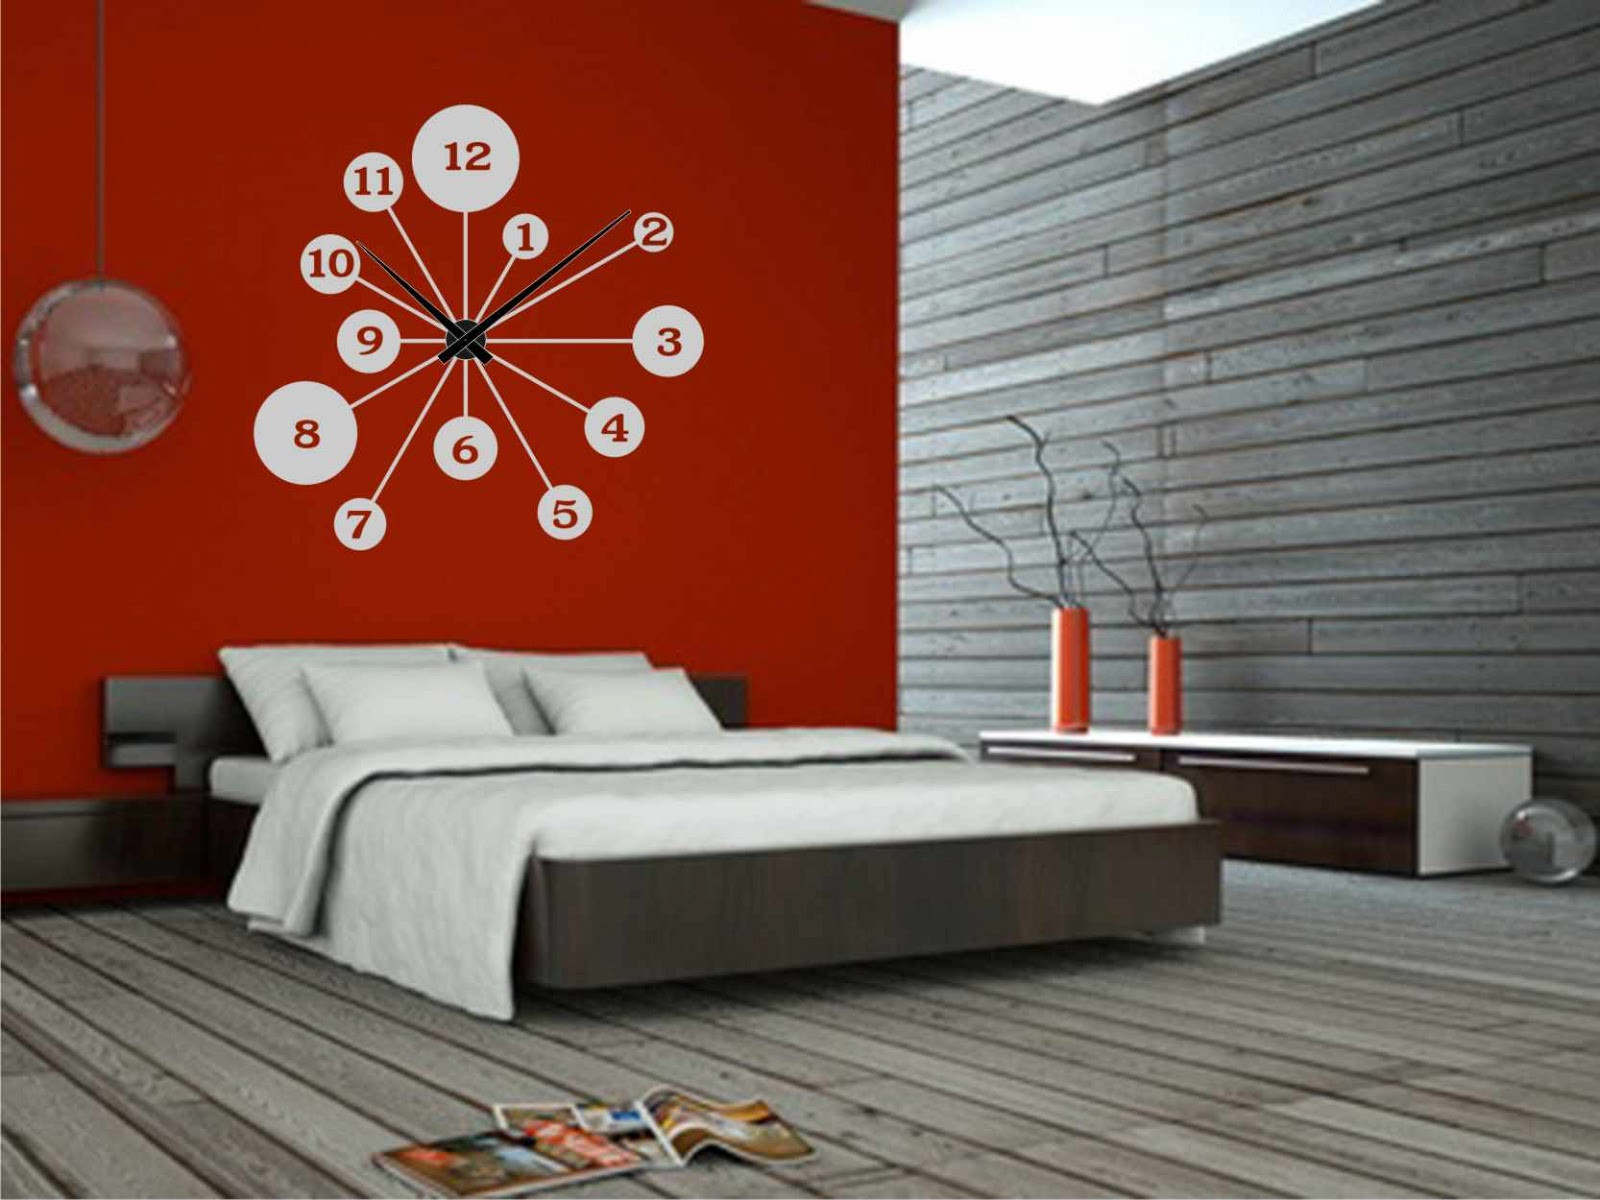 Relojes De Pared Modernos Para Salon Gran Relojesyvinilos Decorar Una Pared Roja Con Un Reloj Of 46  Arriba Relojes De Pared Modernos Para Salon